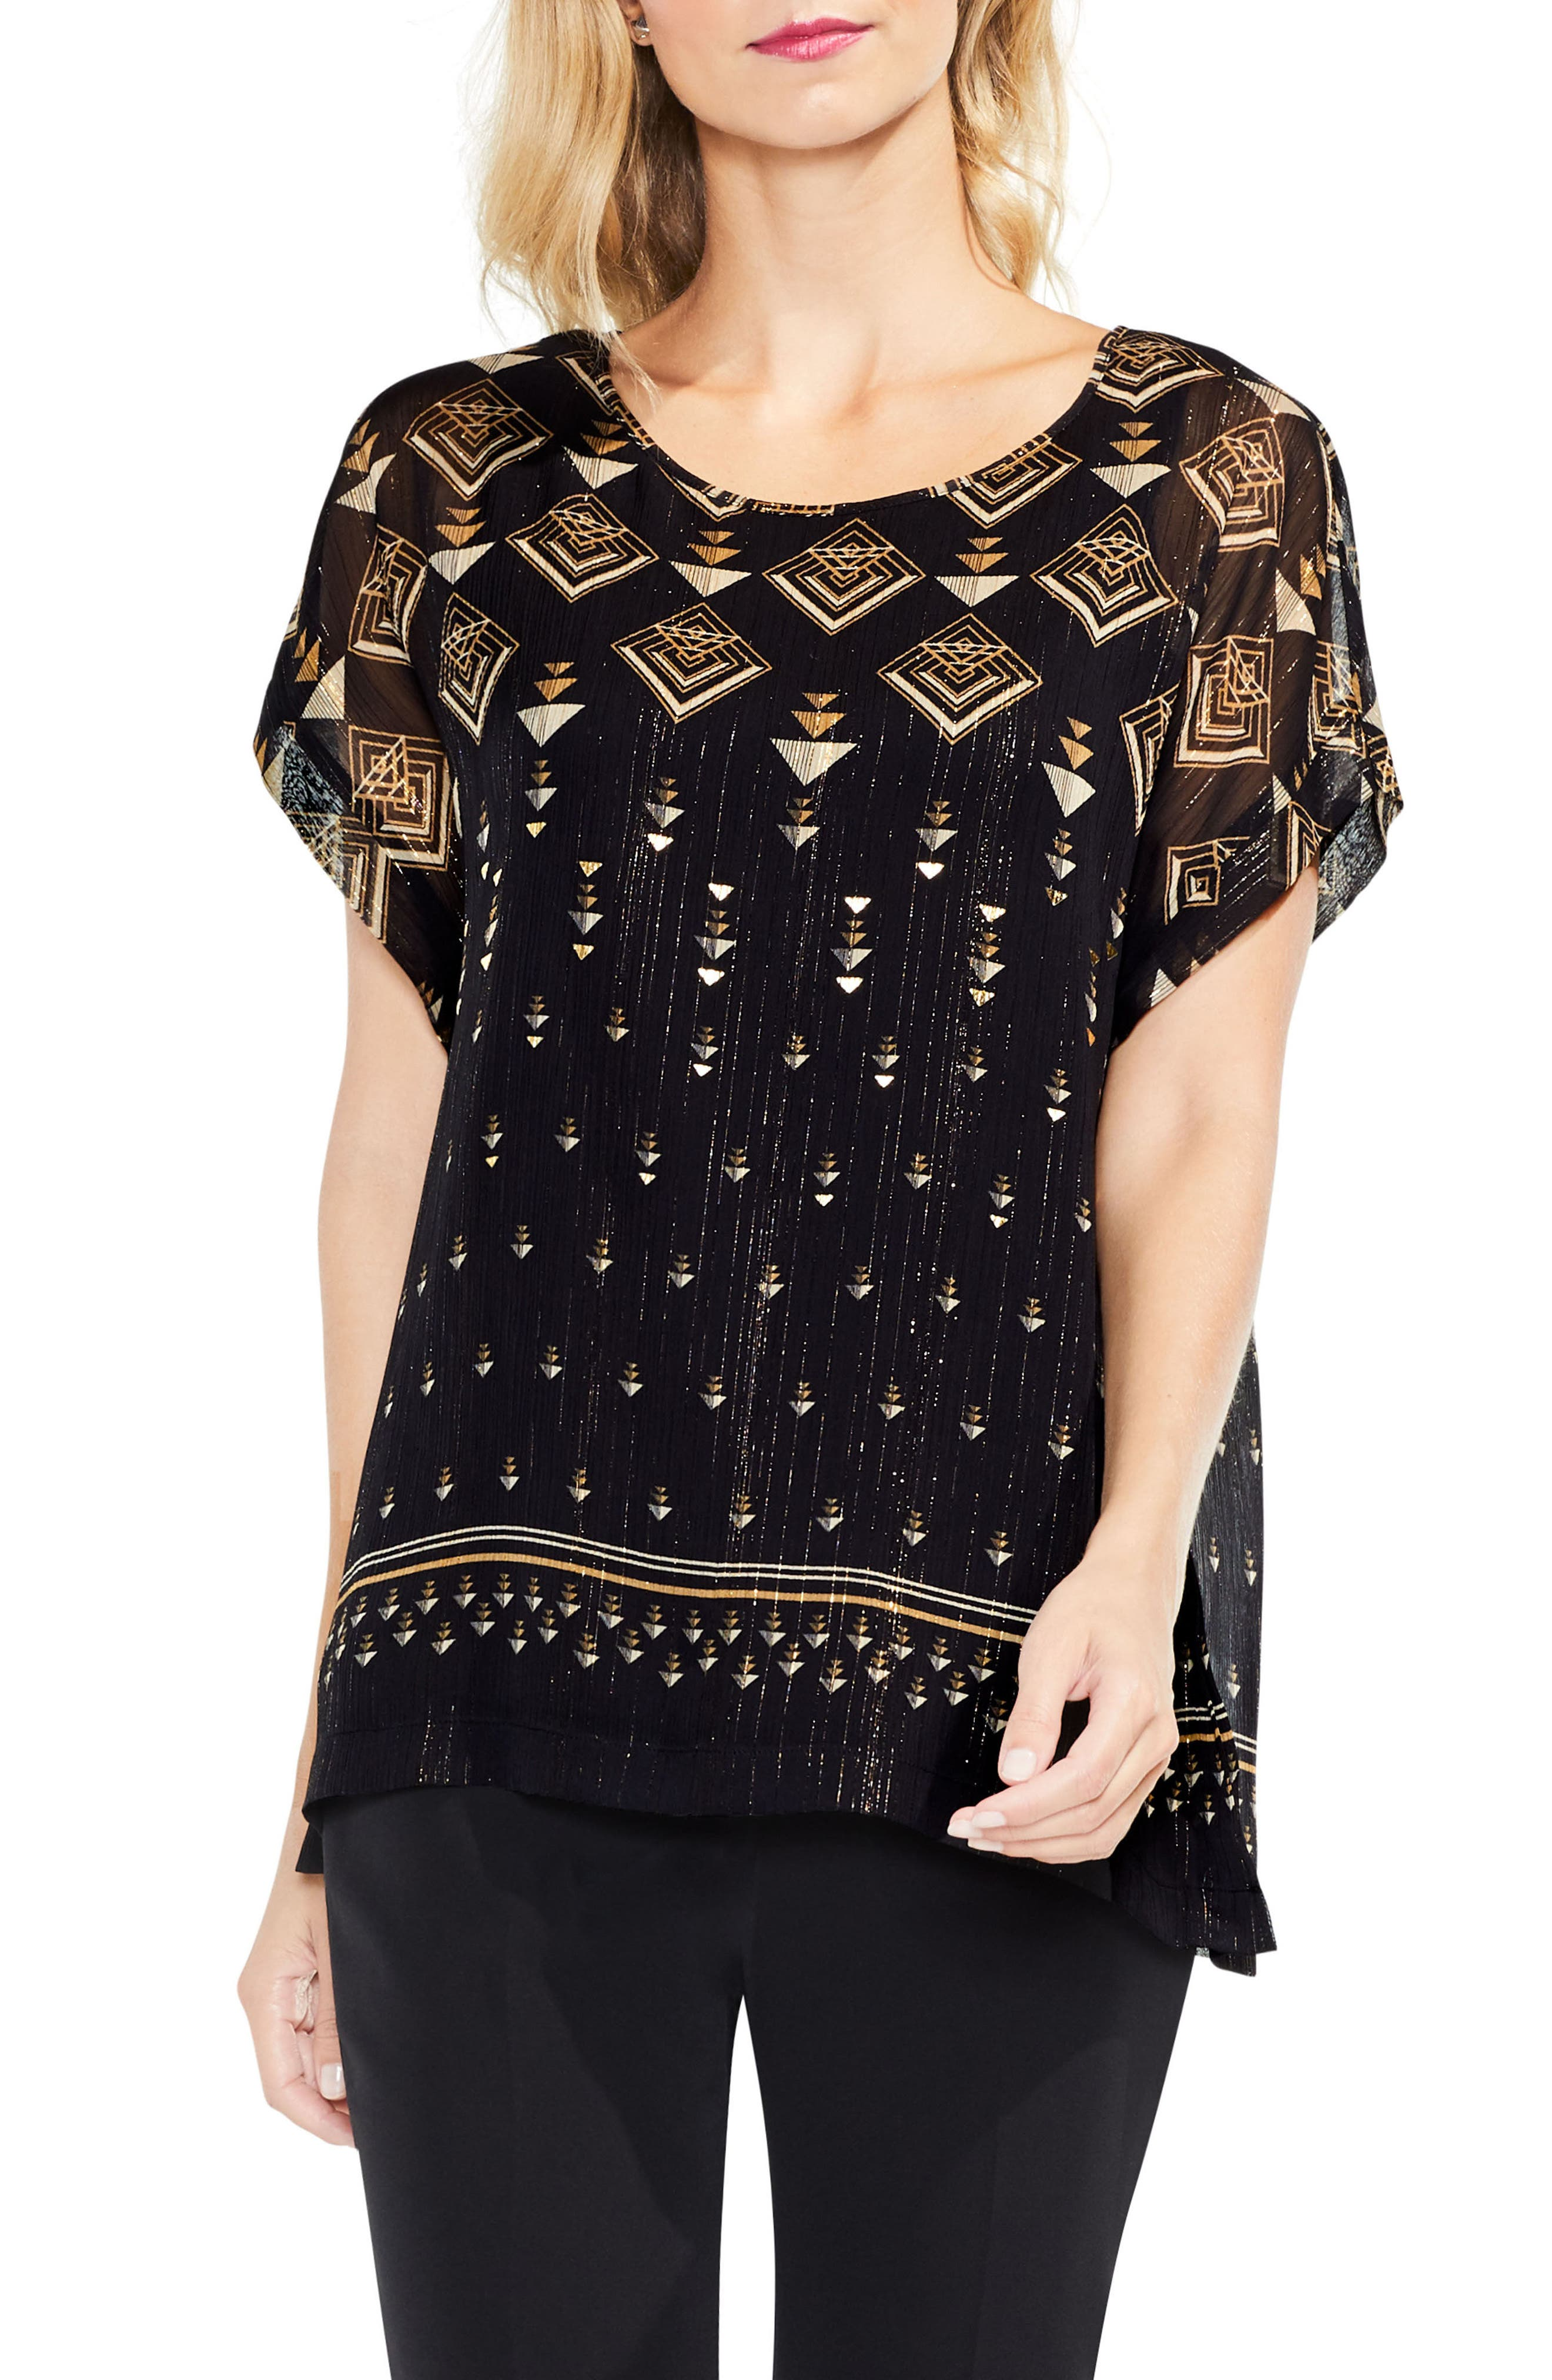 Main Image - Vince Camuto Deco Highlights Top